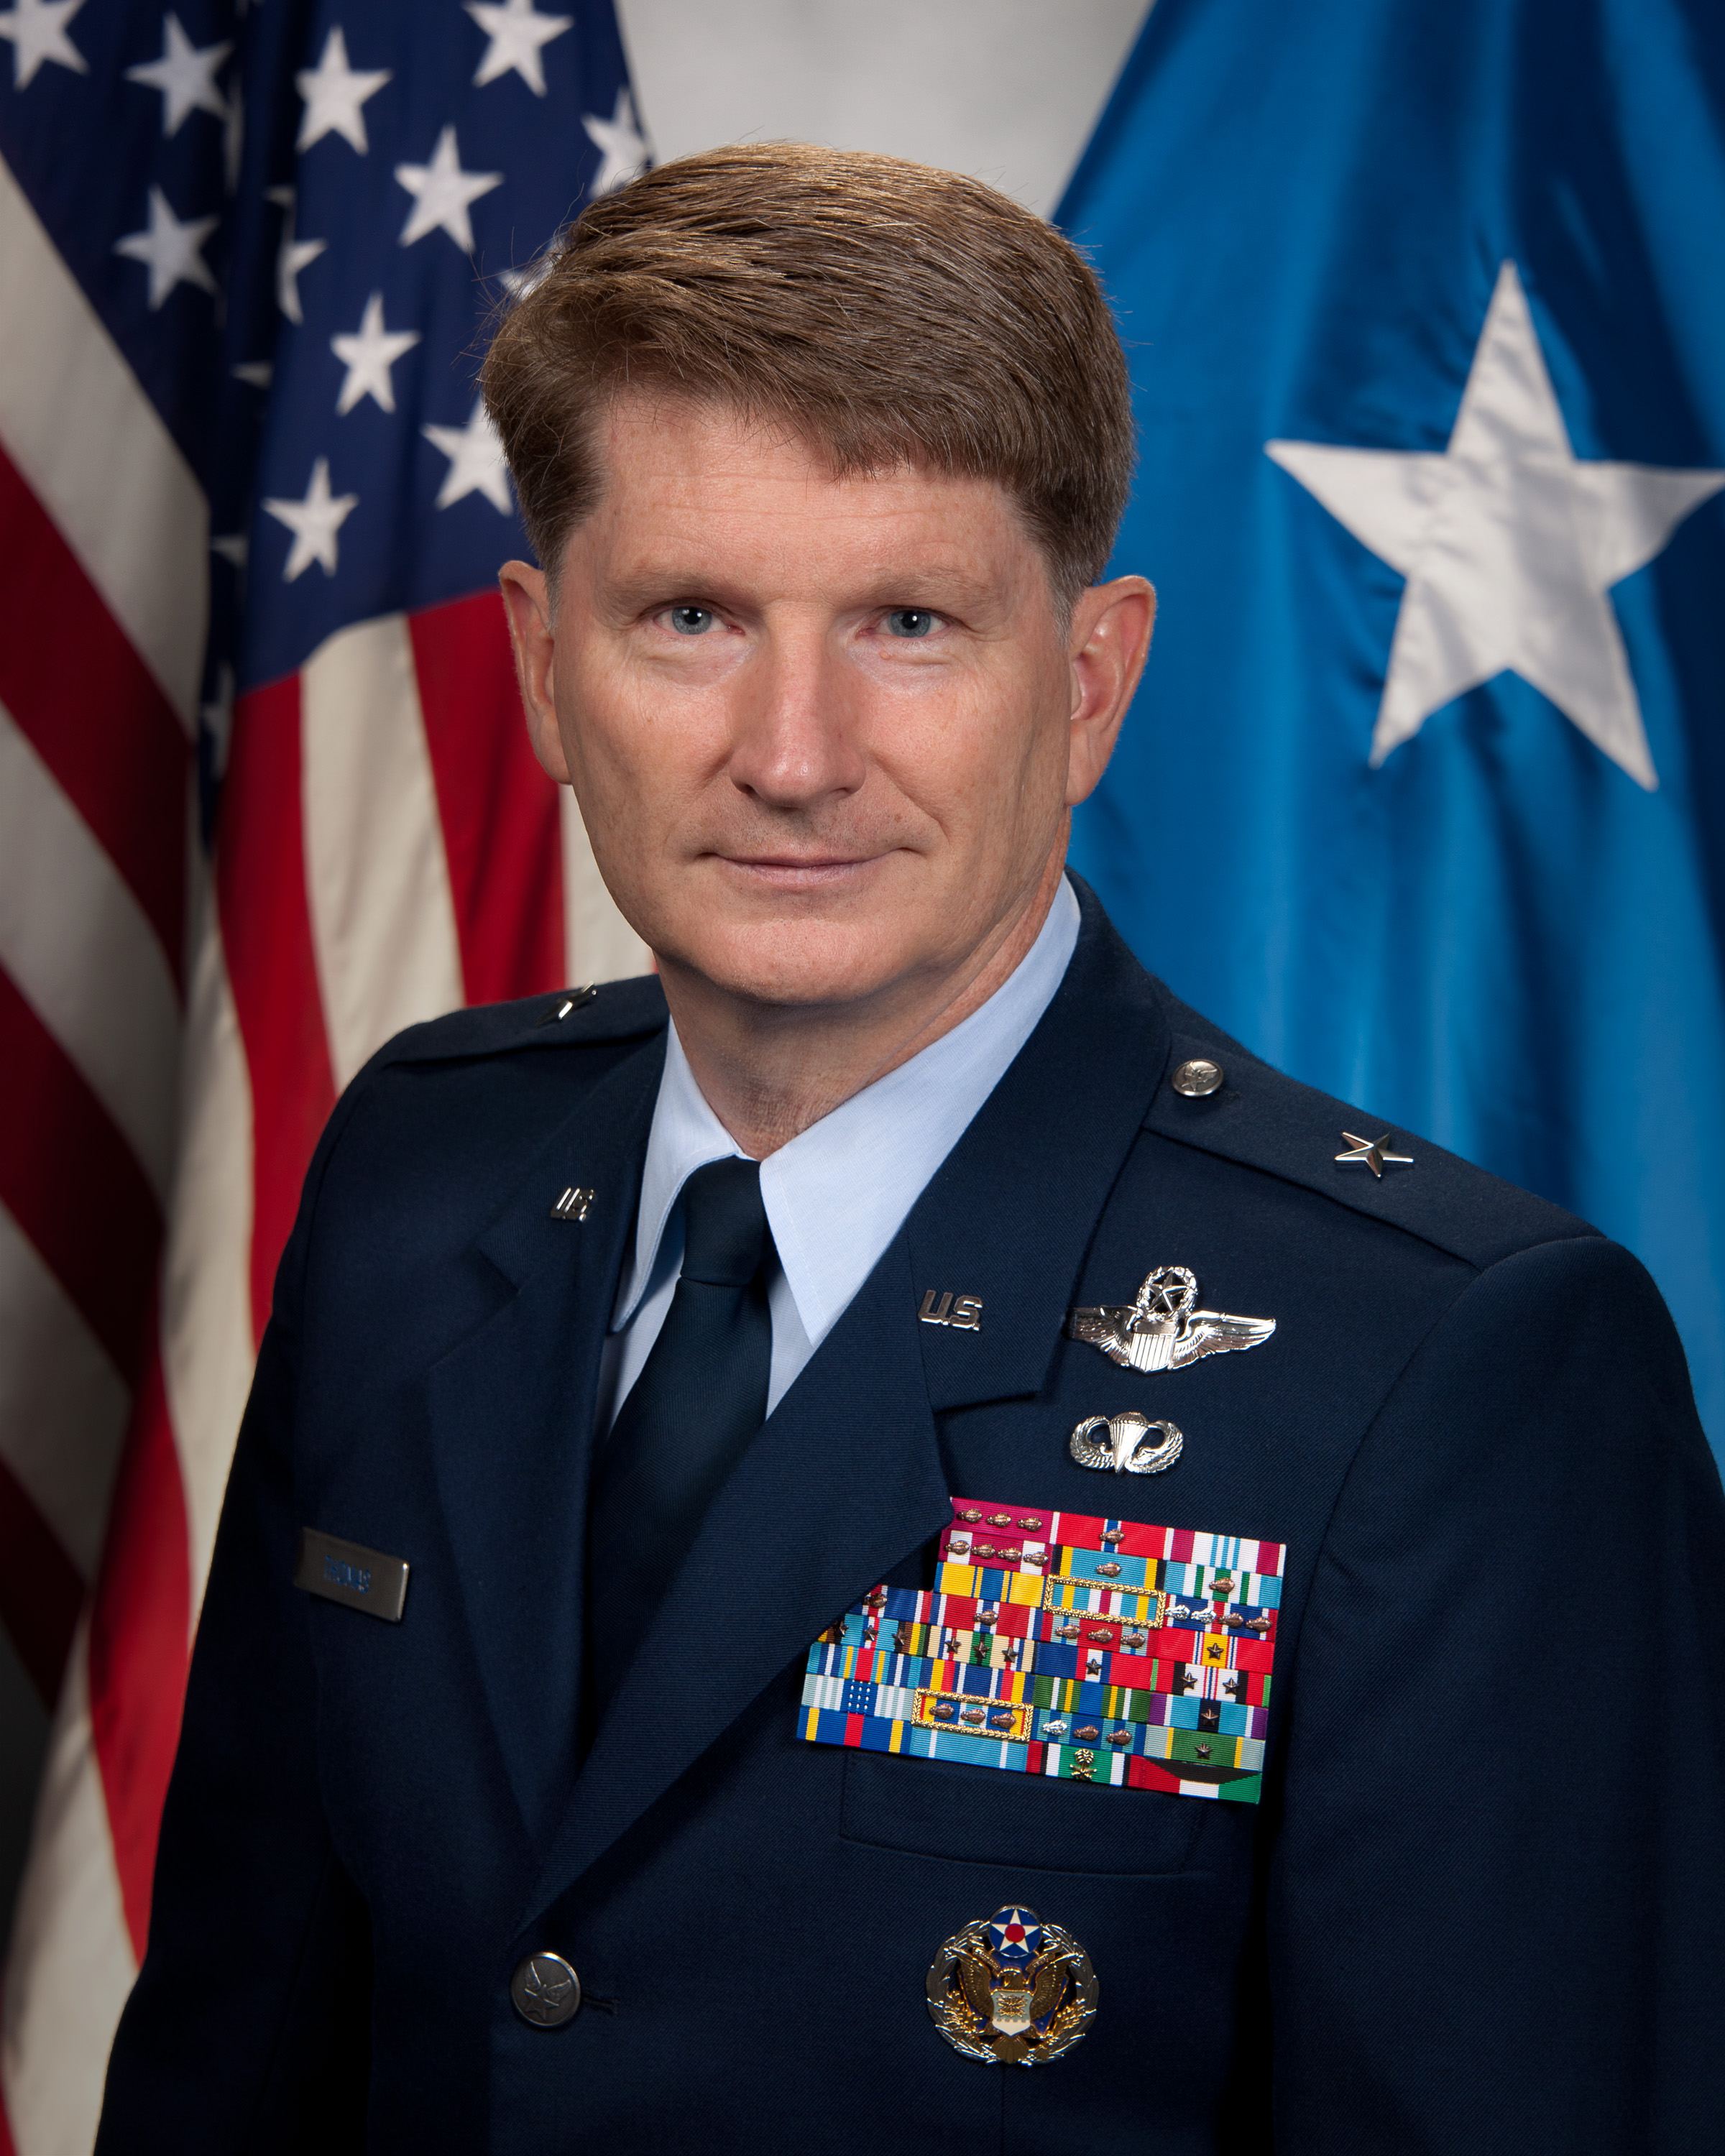 Biographies: BRIGADIER GENERAL ROBERT D. THOMAS > U.S. Air Force